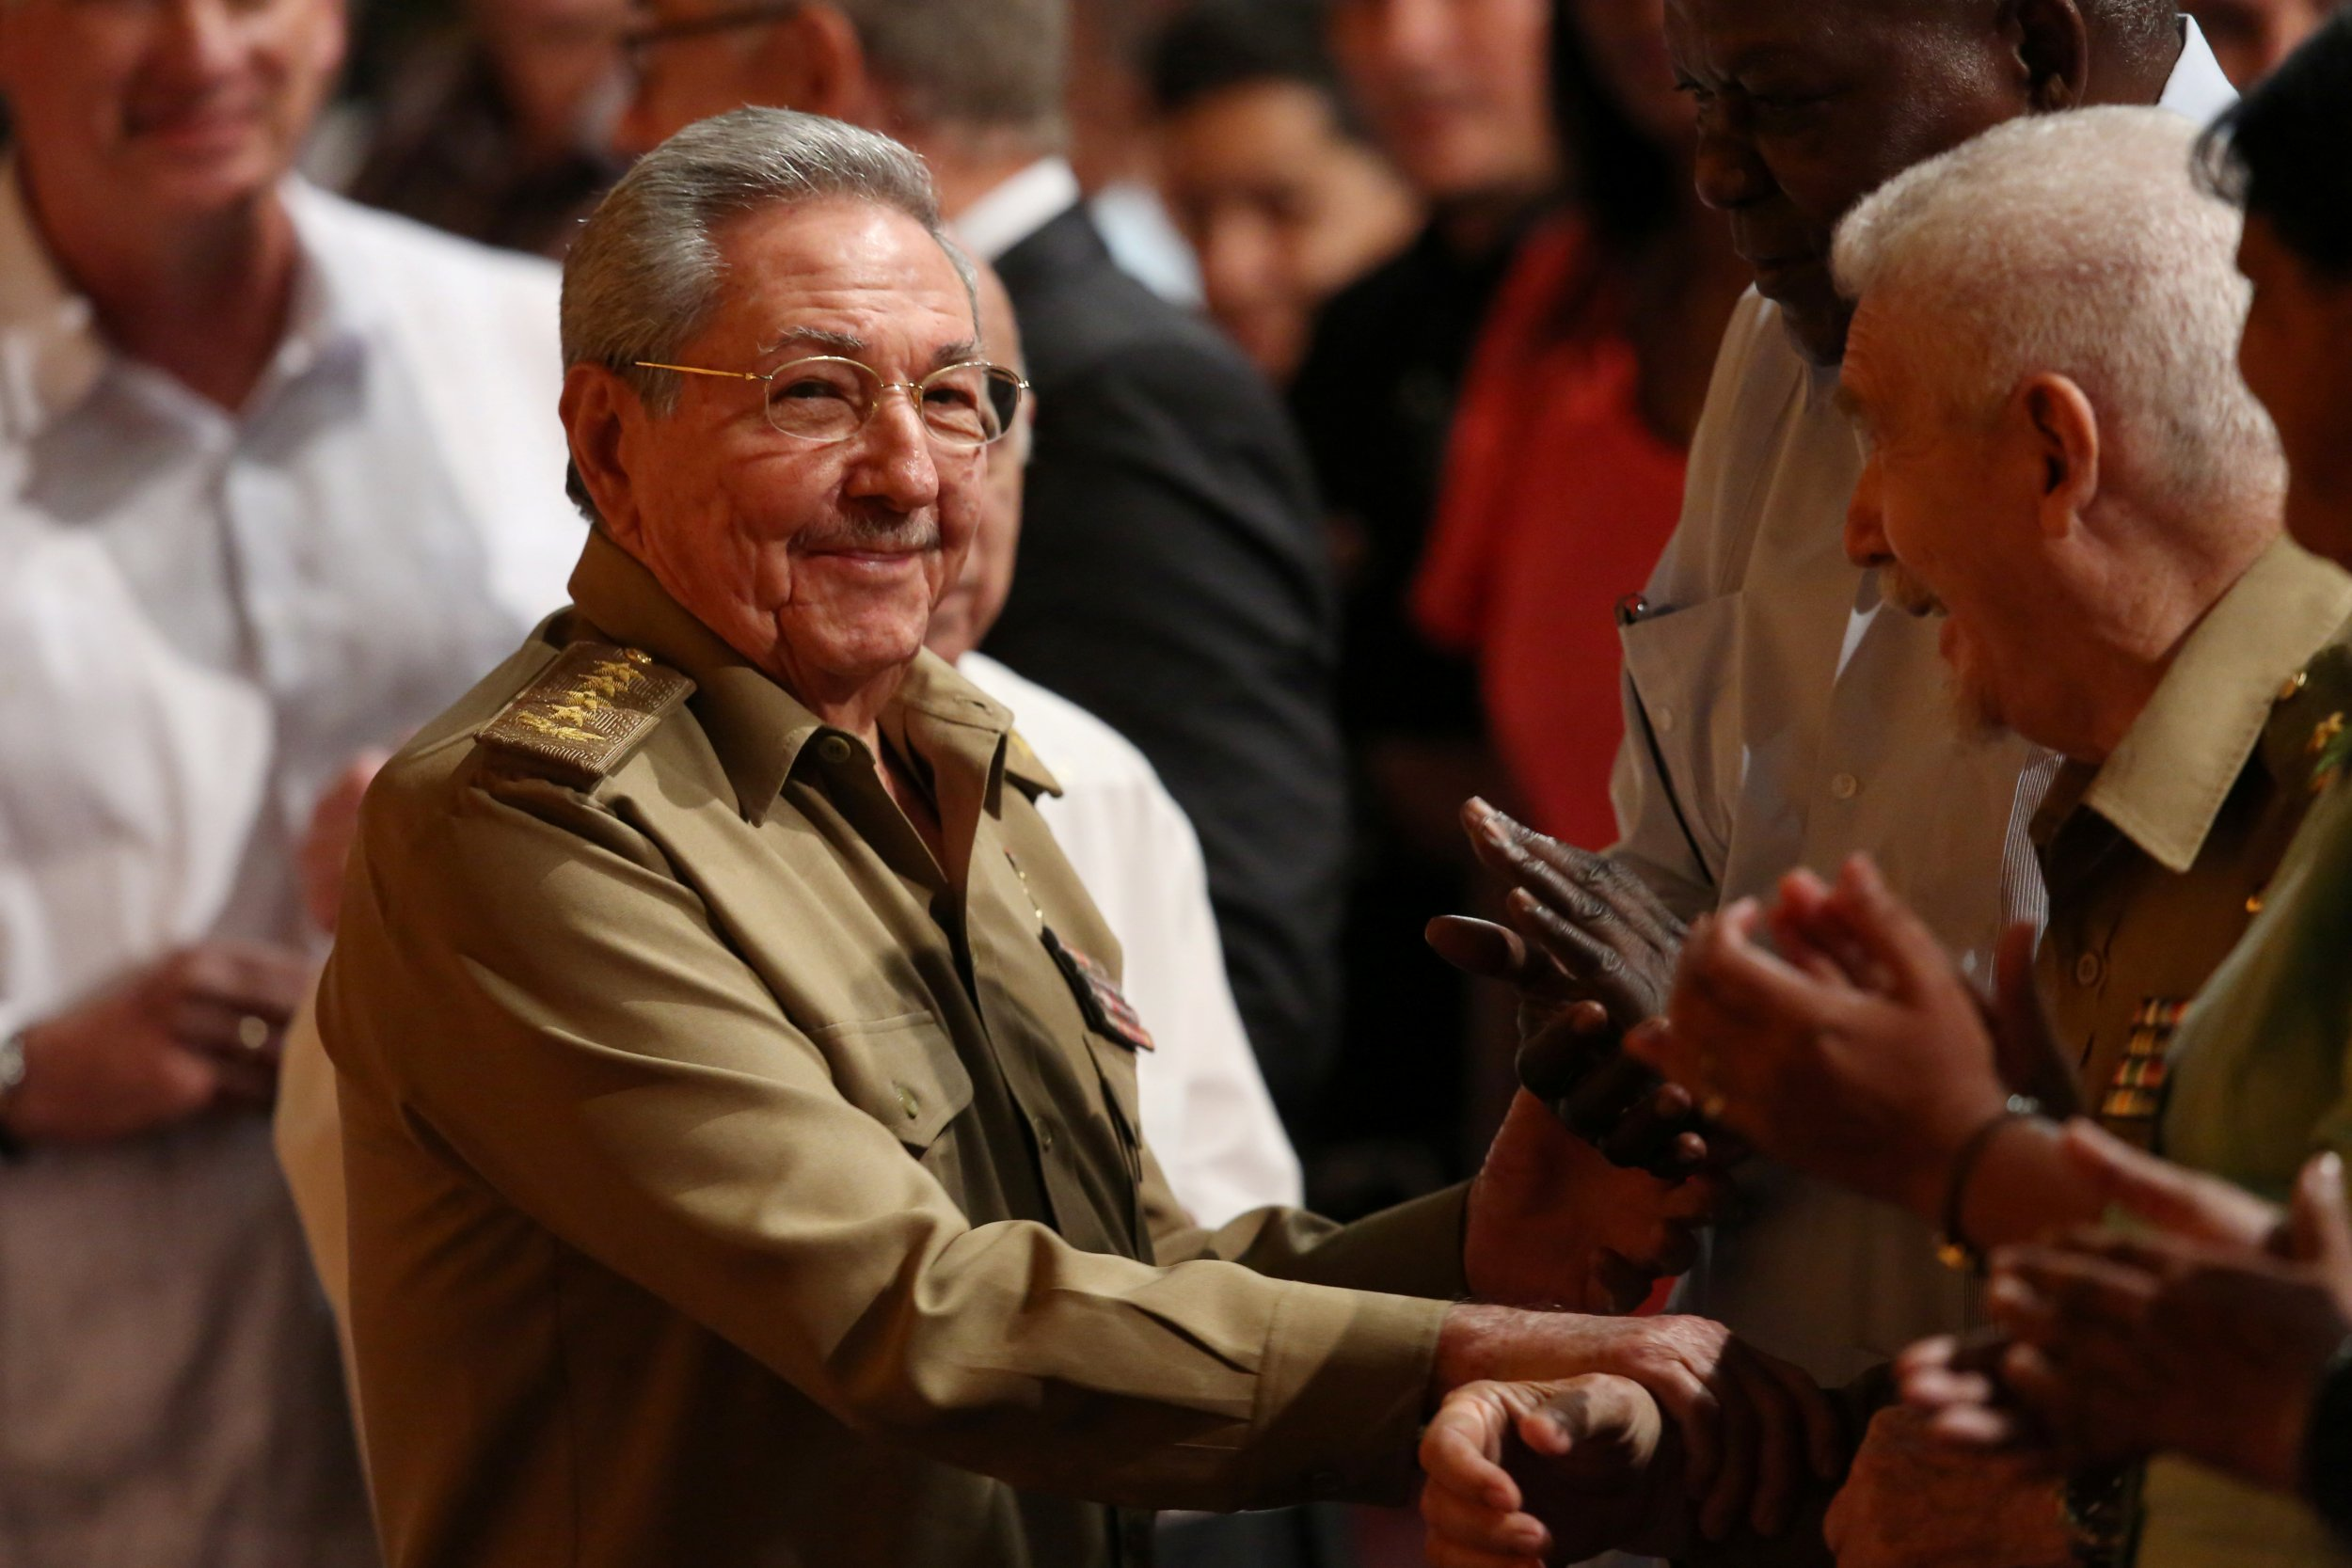 Cuba hopes to help to defuse tensions between North Korea and the U.S.